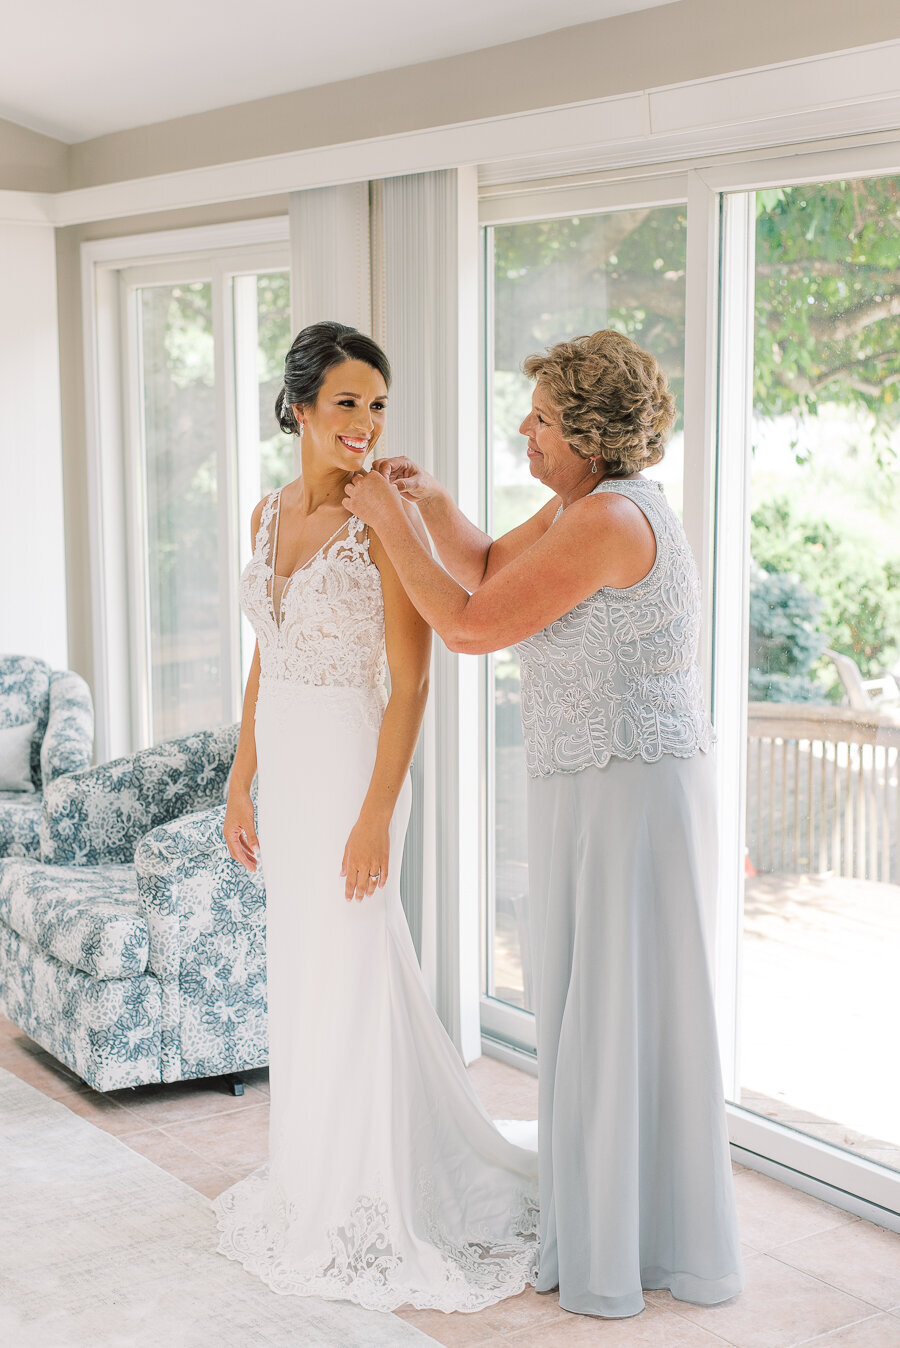 Prospect_Bay_Country_Club_Wedding_Maryland_Megan_Harris_Photography-13